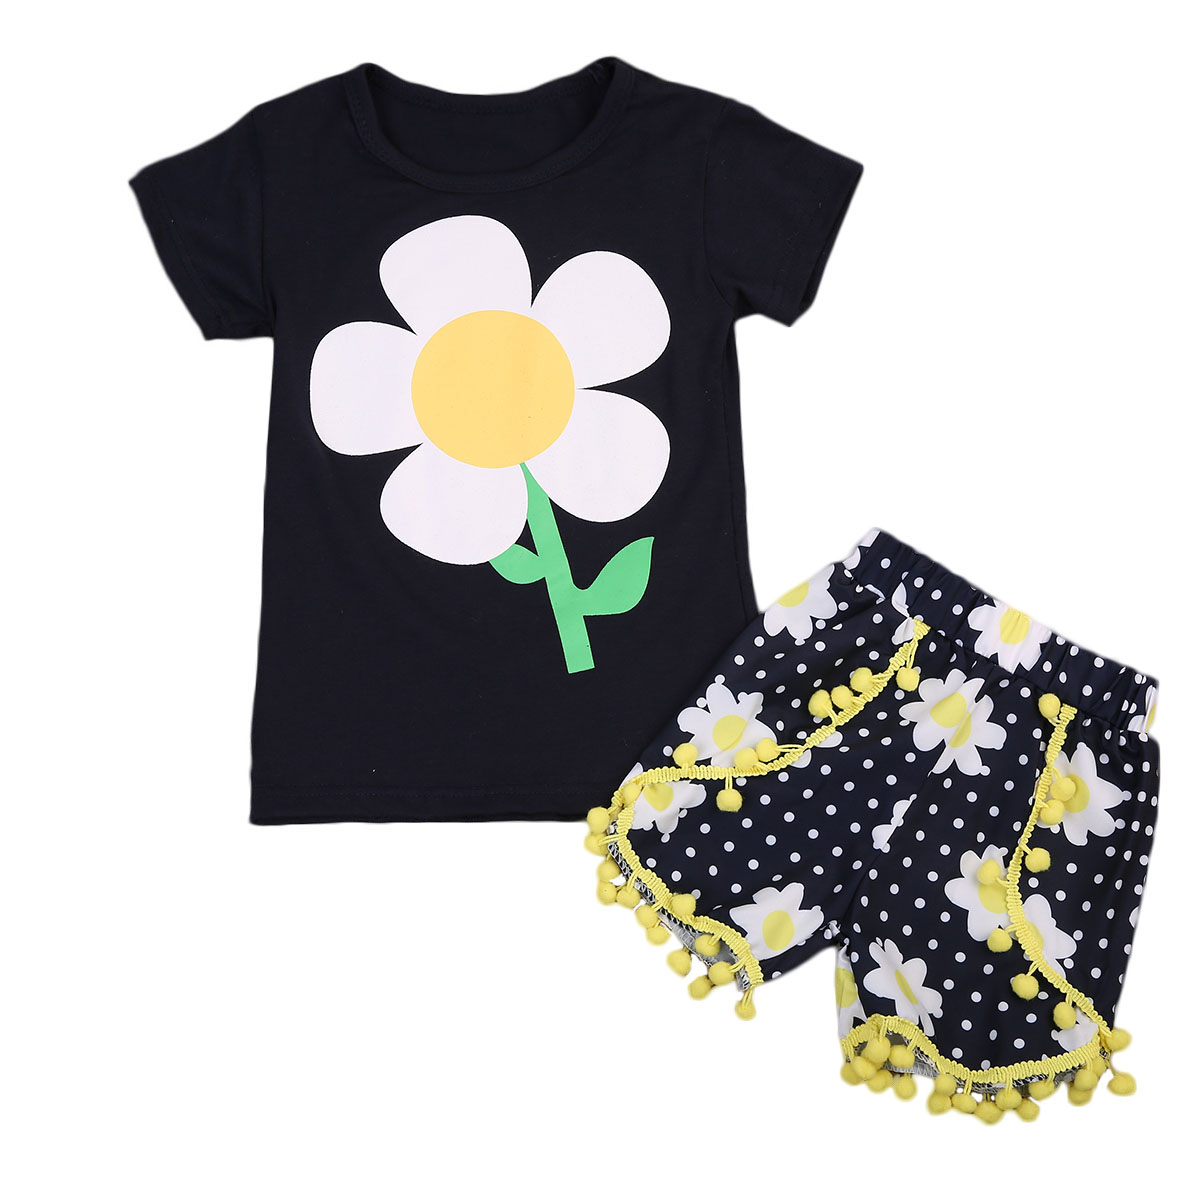 New Hot Sale Toddles Kids Girls Sunflower T-shirt And Short Pants 2pcs Set Outfits Summer Clothes 1-6Years